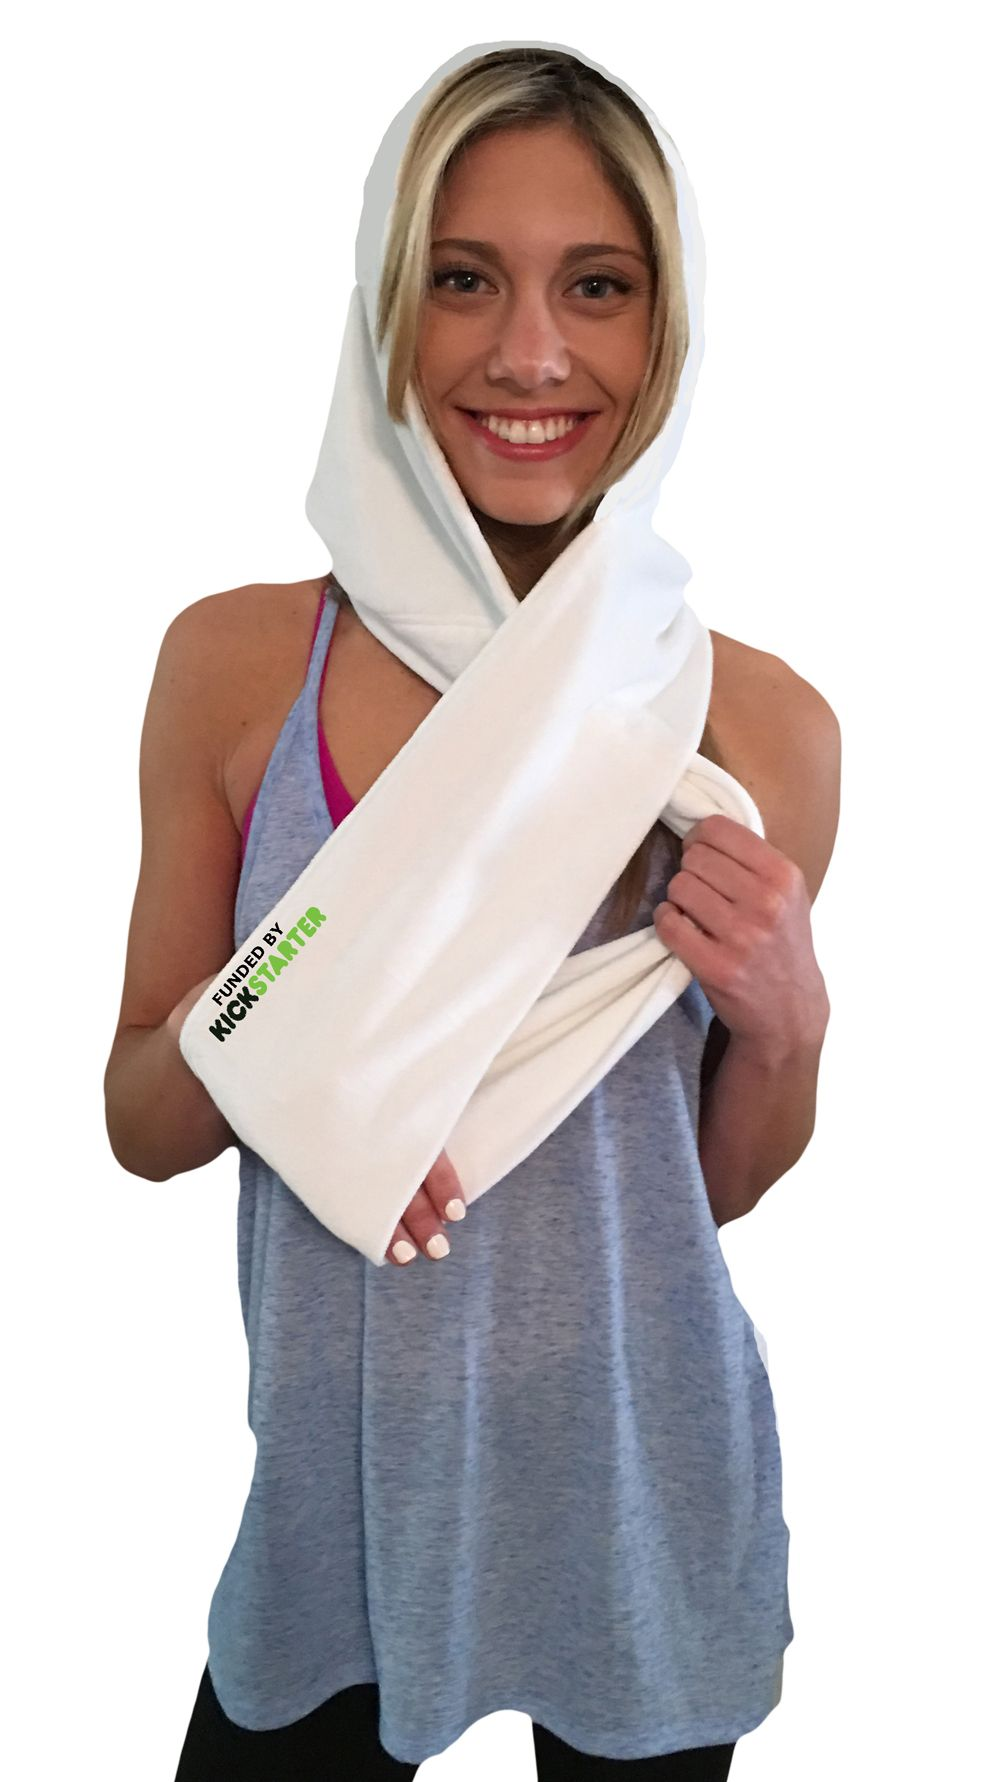 """Limited Edition """"funded by KICKSTARTER"""" towel"""